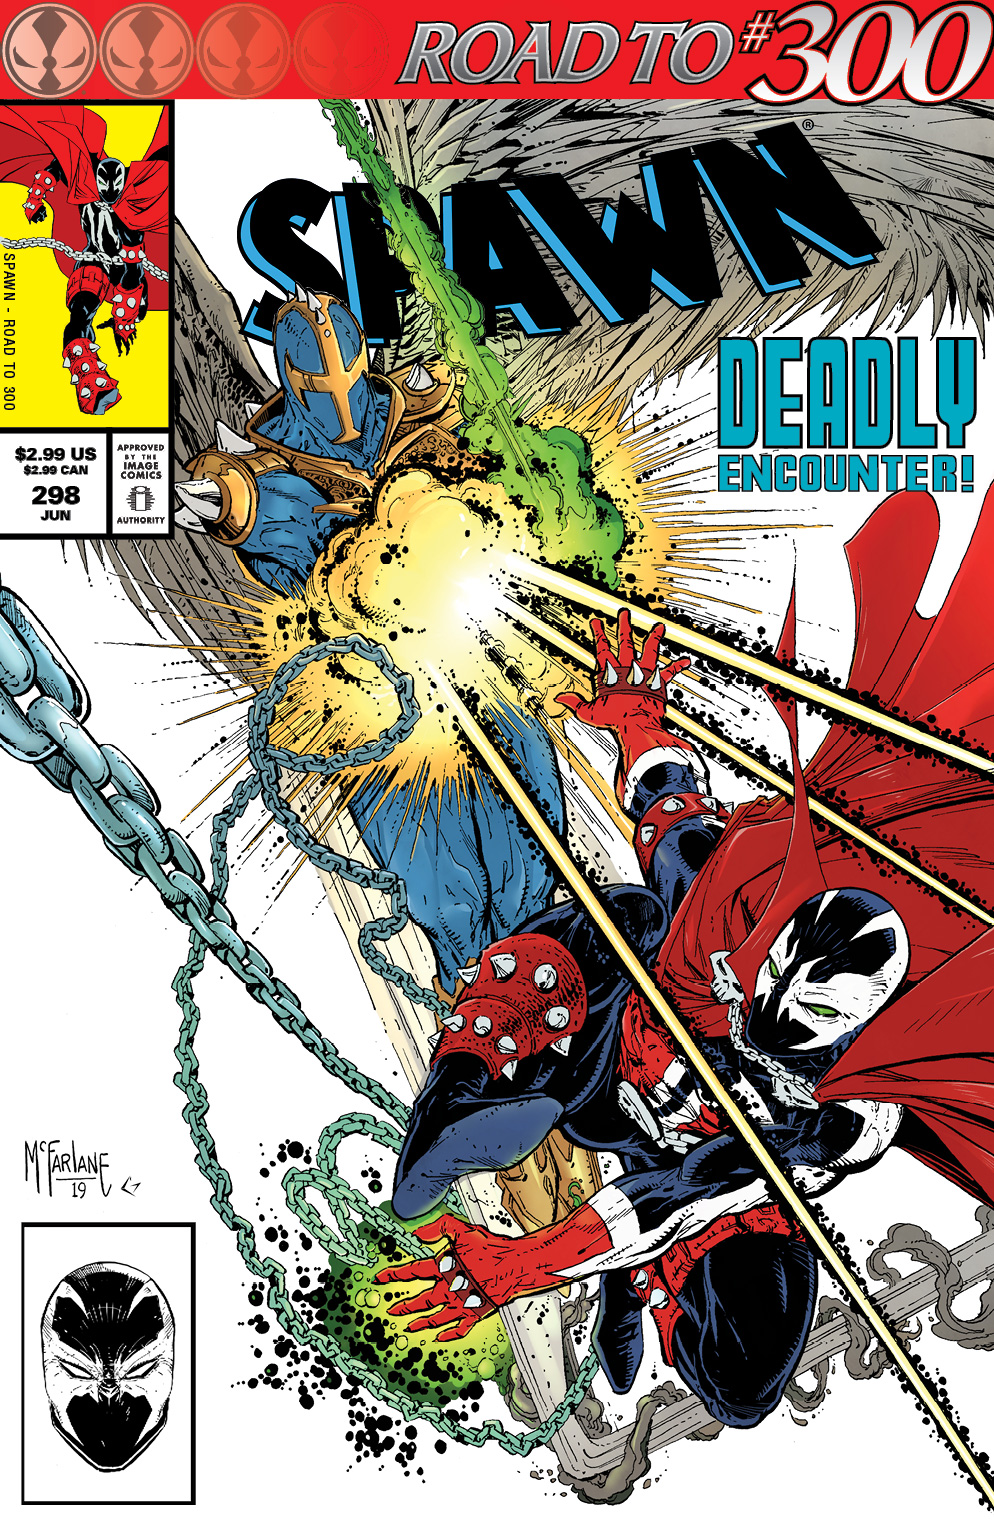 Spawn 298 Out Next Week!